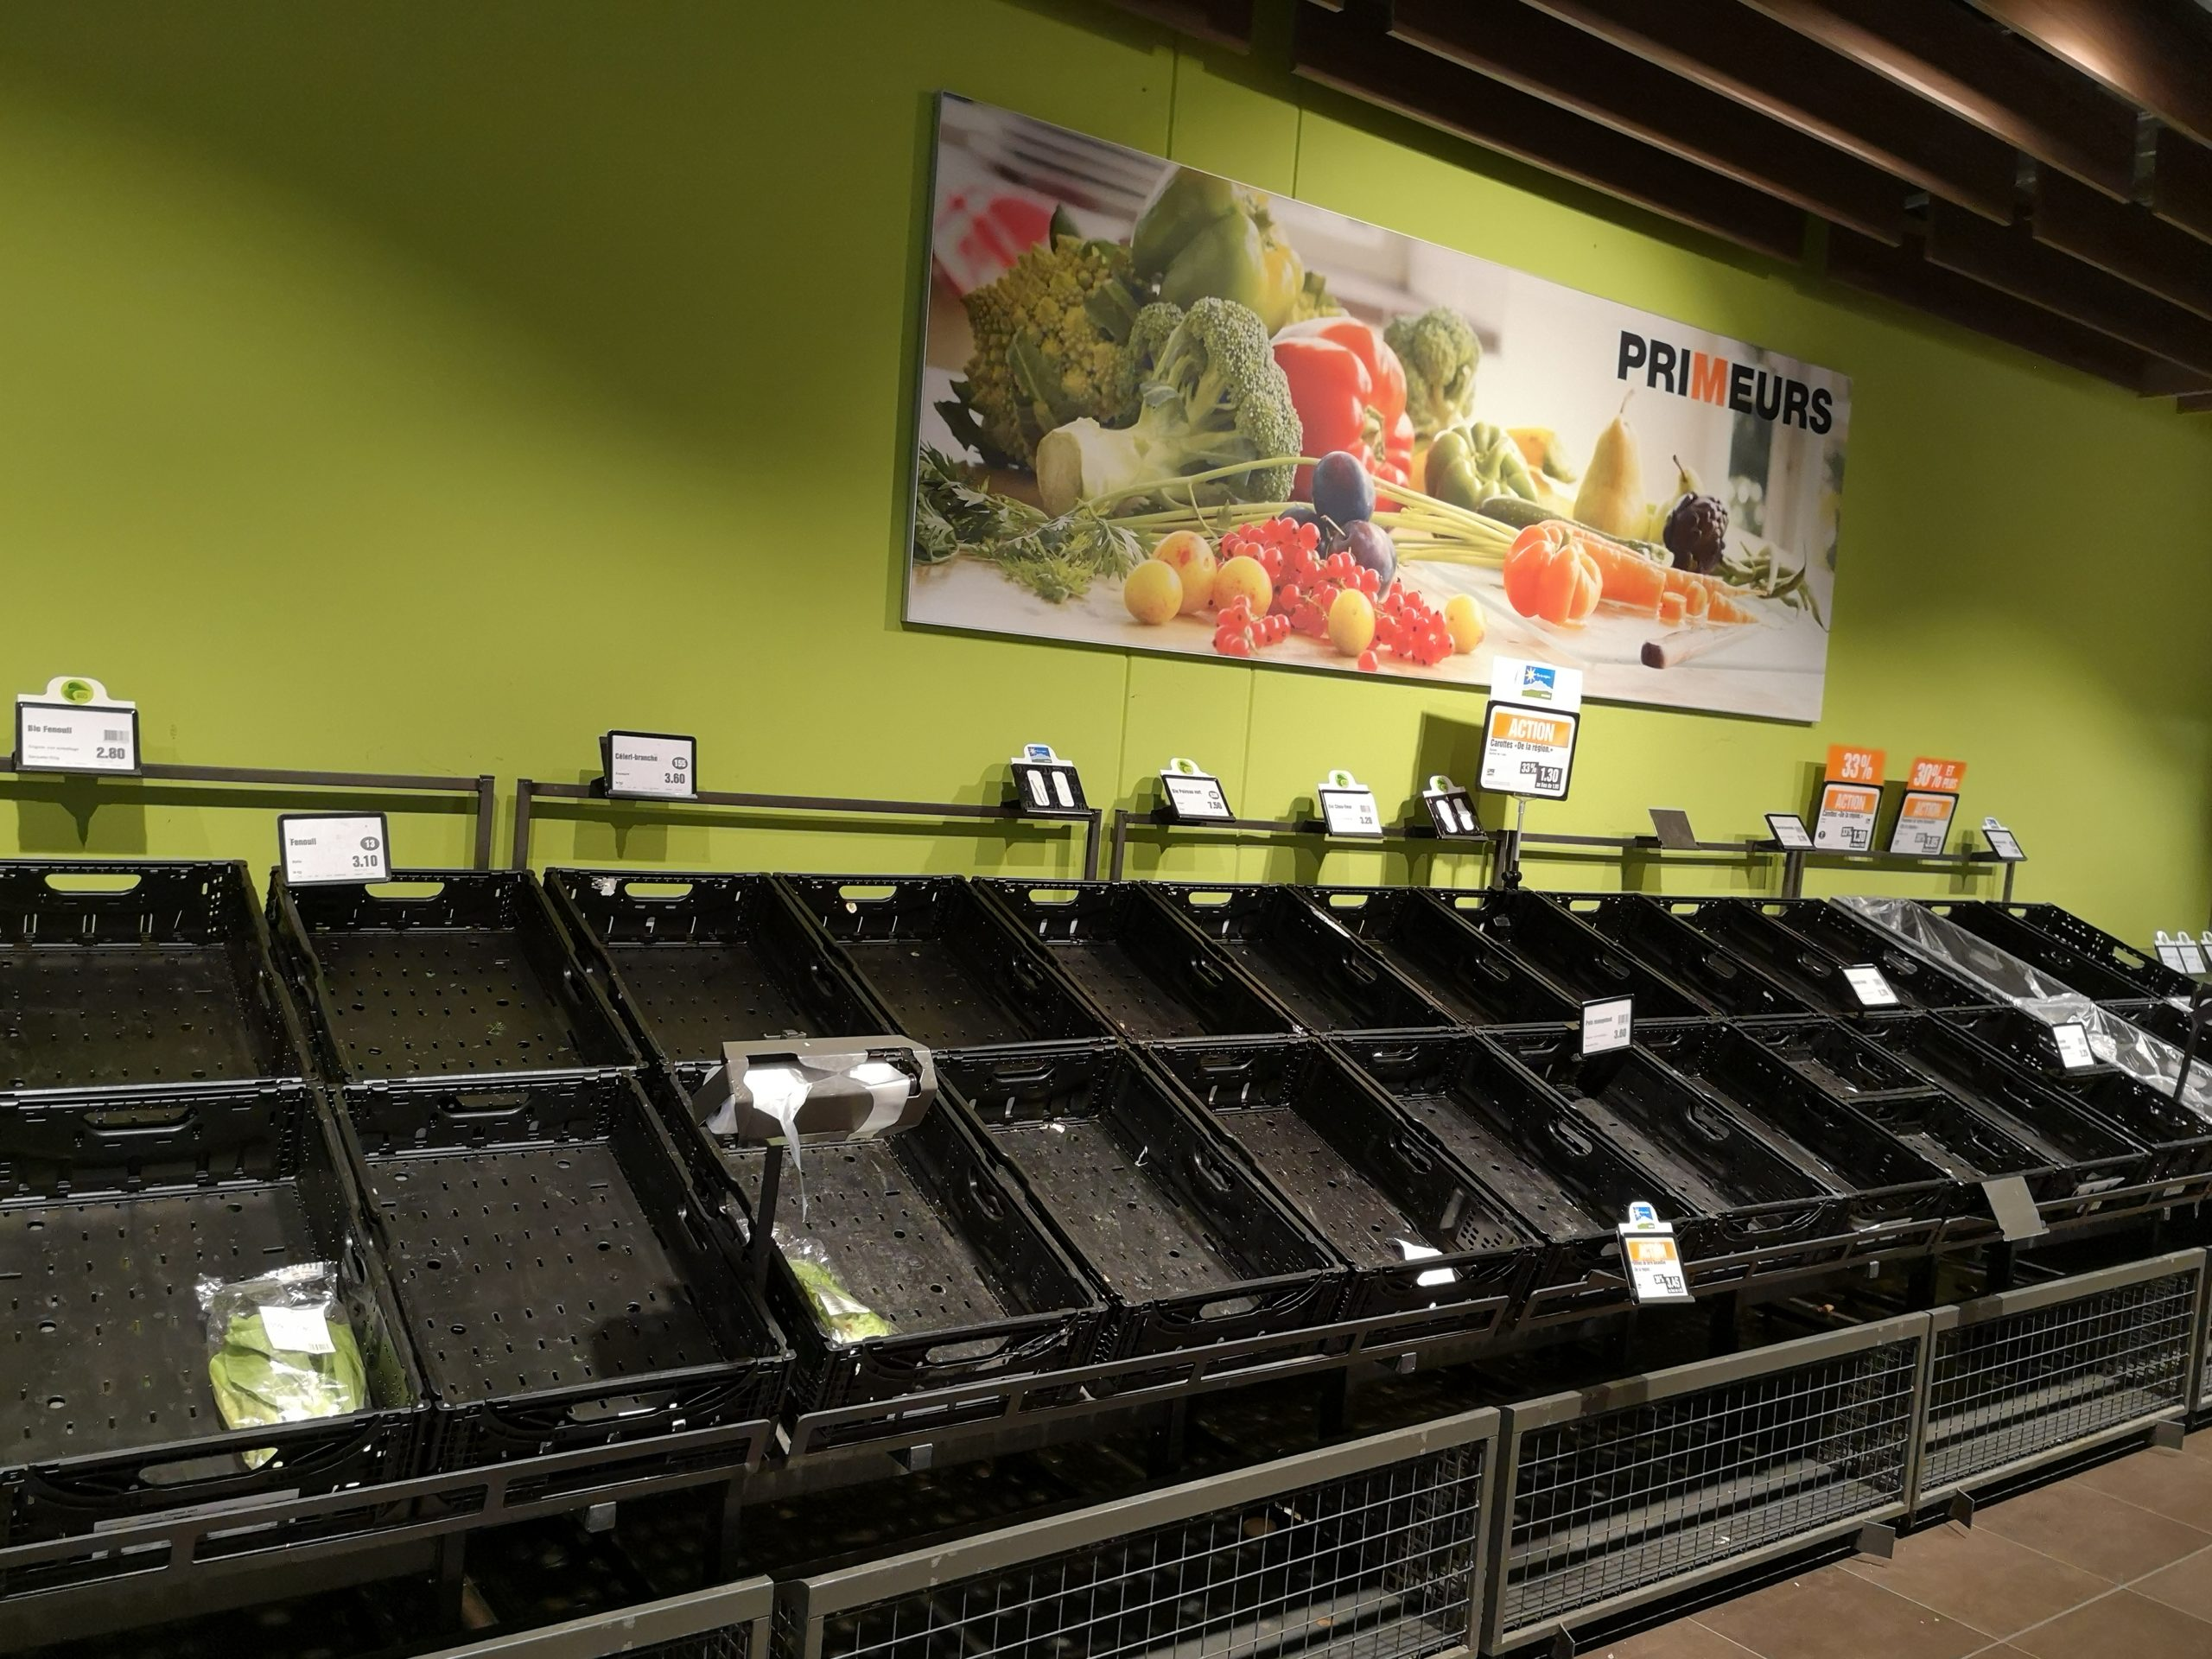 Empty shelves at the supermarket